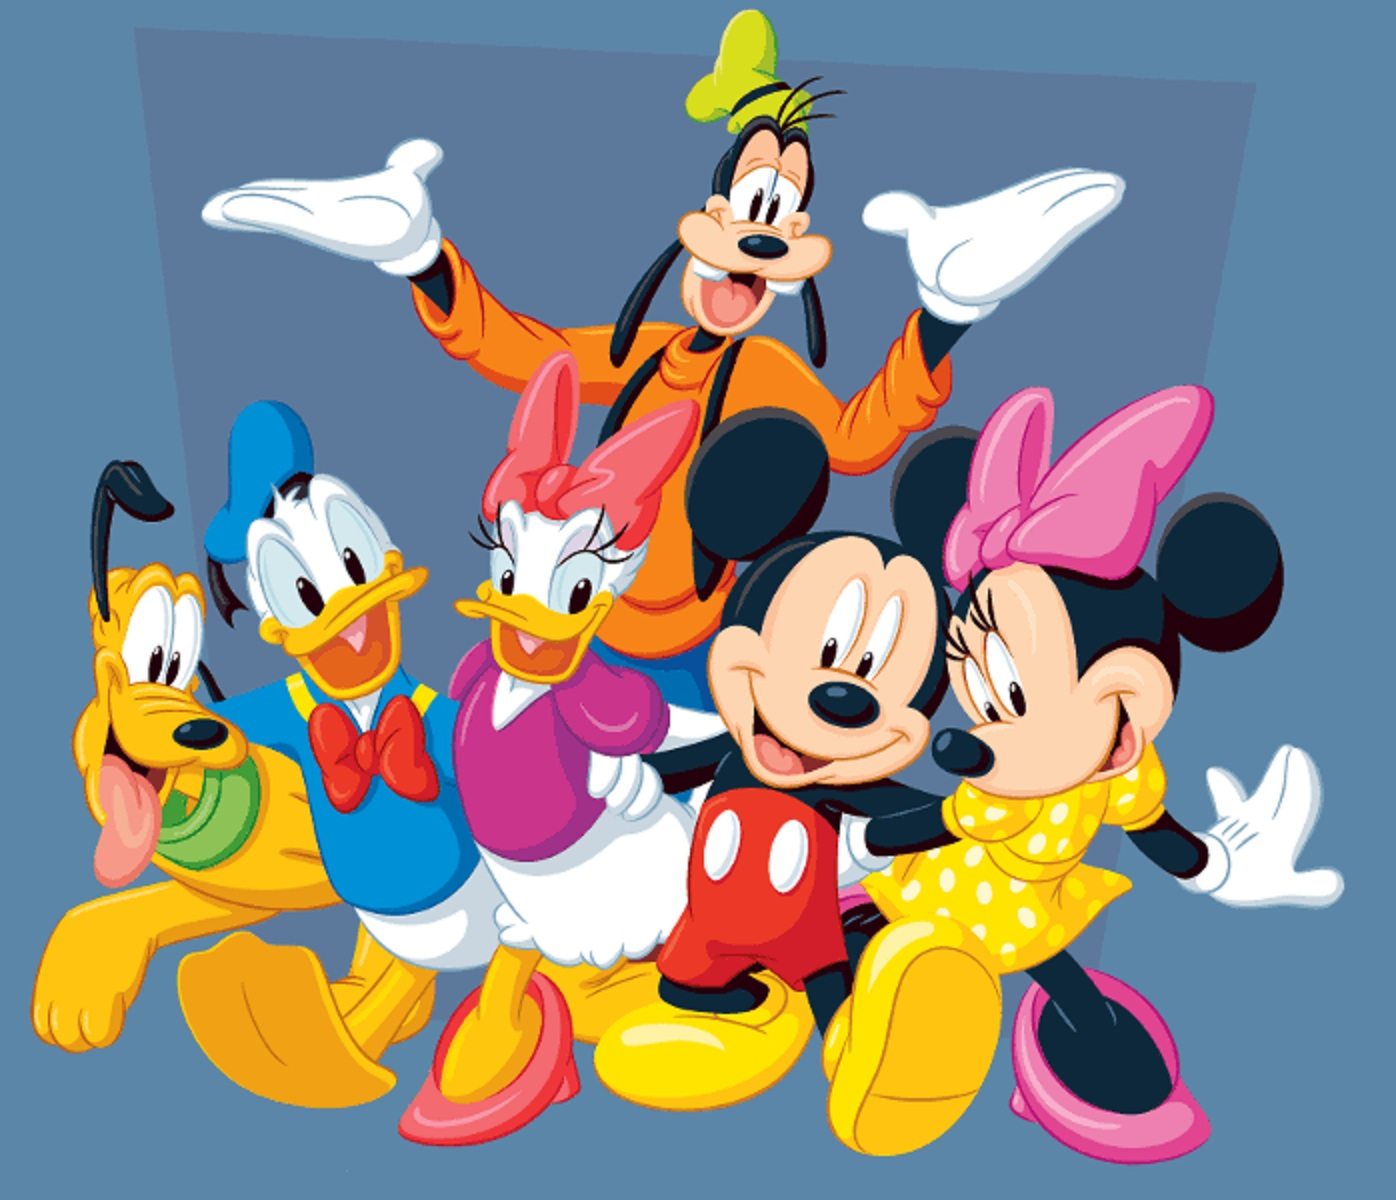 Disney HD Wallpapers: Walt Disney Cartoon HD Wallpapers